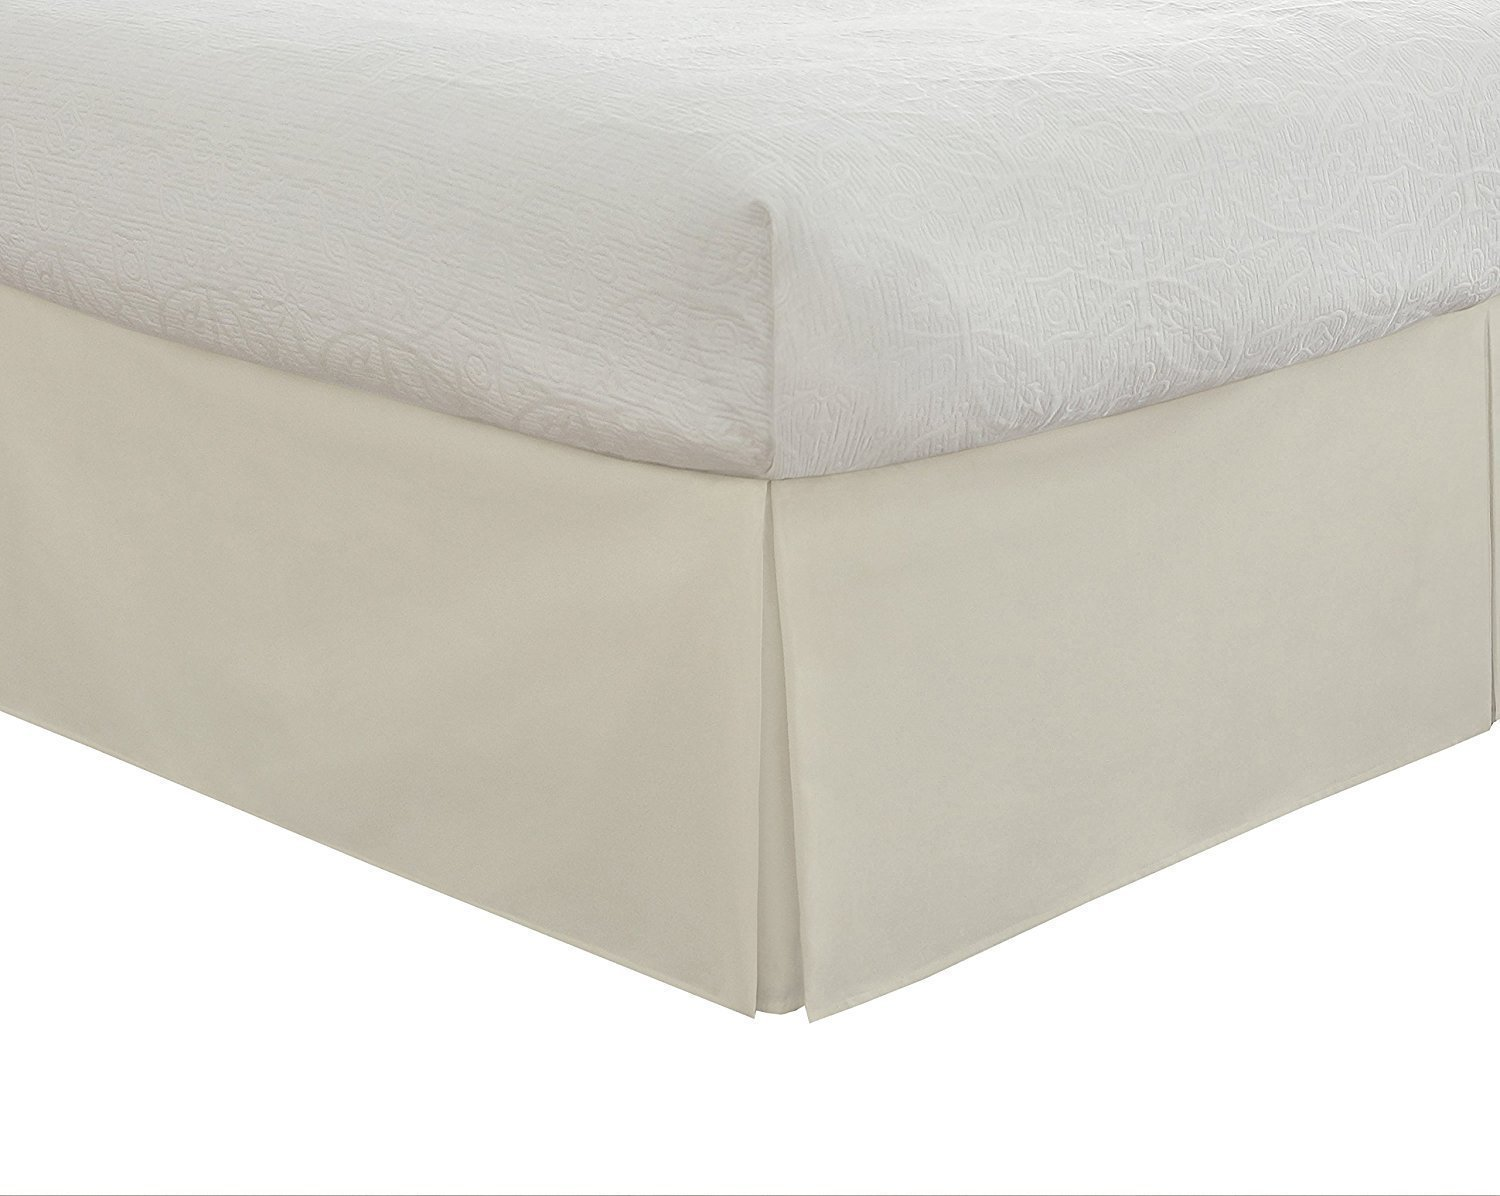 NVT Linen Great Sale on Amazon Queen Size Bed Skirt 400 Thread Count Egyptian Cotton Hotel Quality Bed Skirt { Drop/Fall Length 10 Inch } Perfect Size Queen (60X80) Ivory Solid Pattern